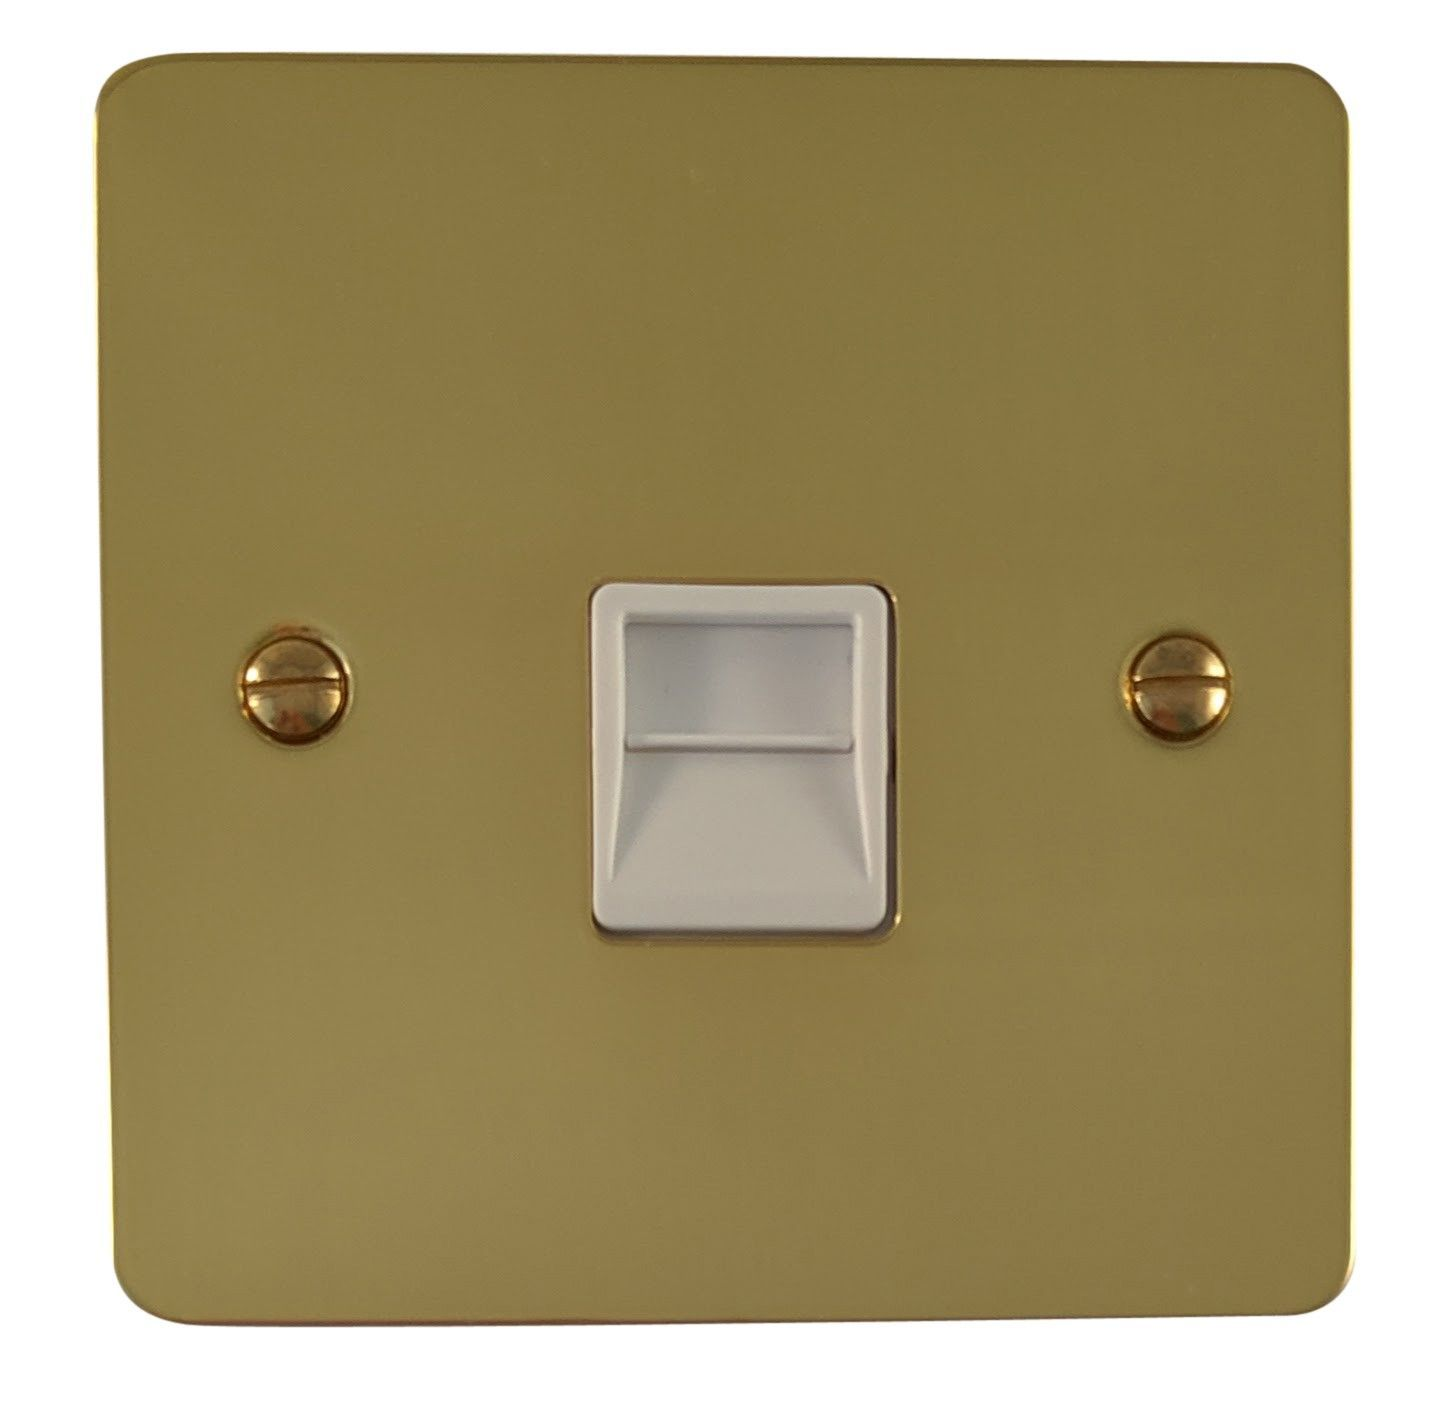 G&H FB34W Flat Plate Polished Brass 1 Gang Slave BT Telephone Socket